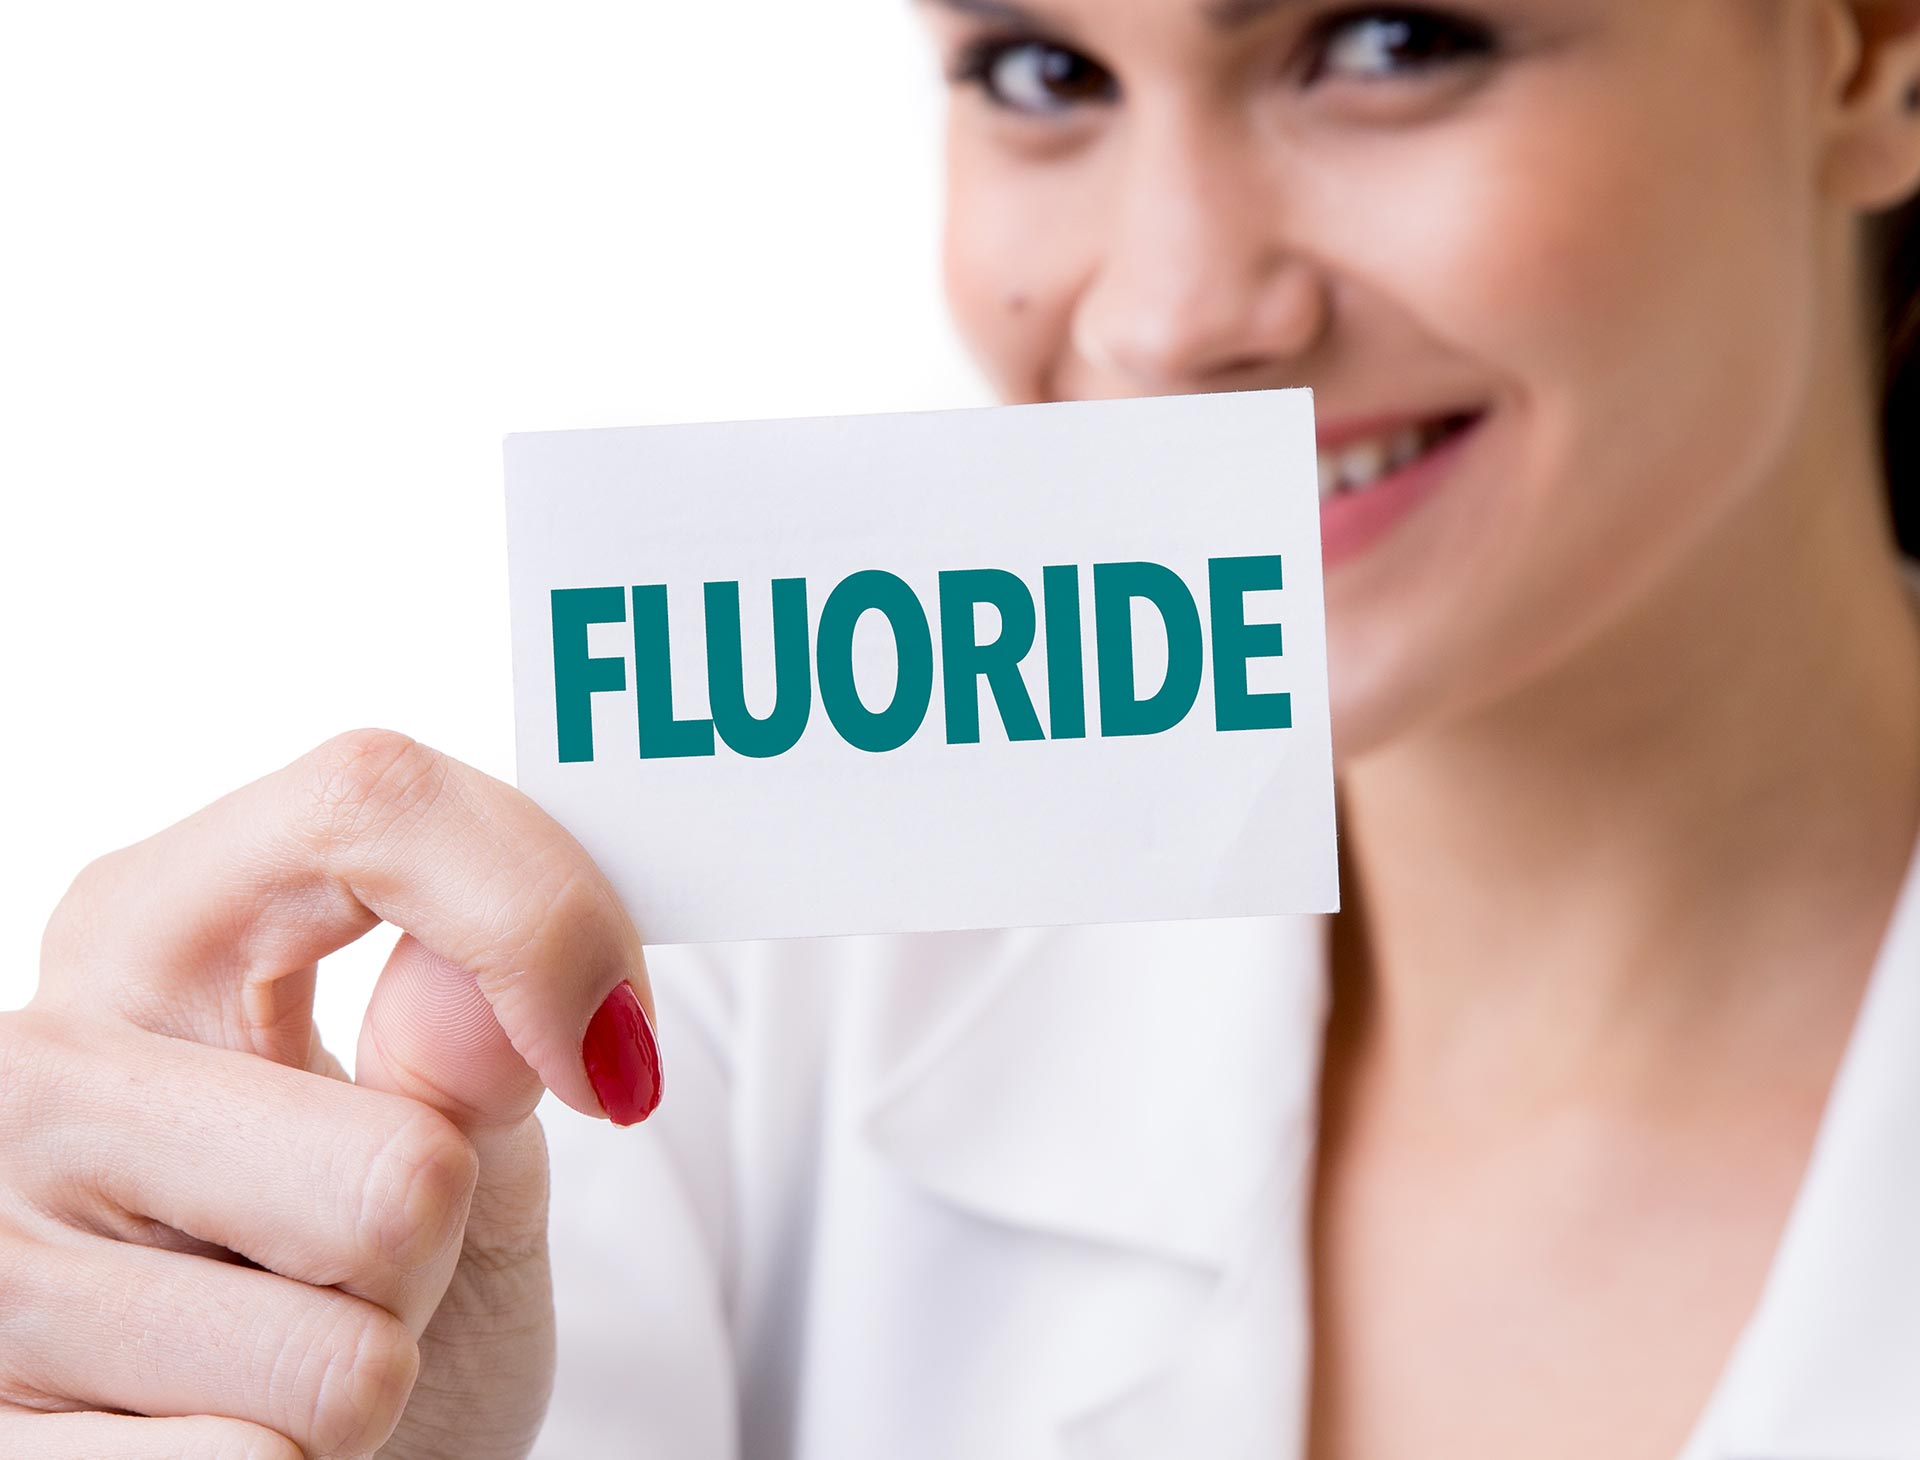 Fluoride Treatment